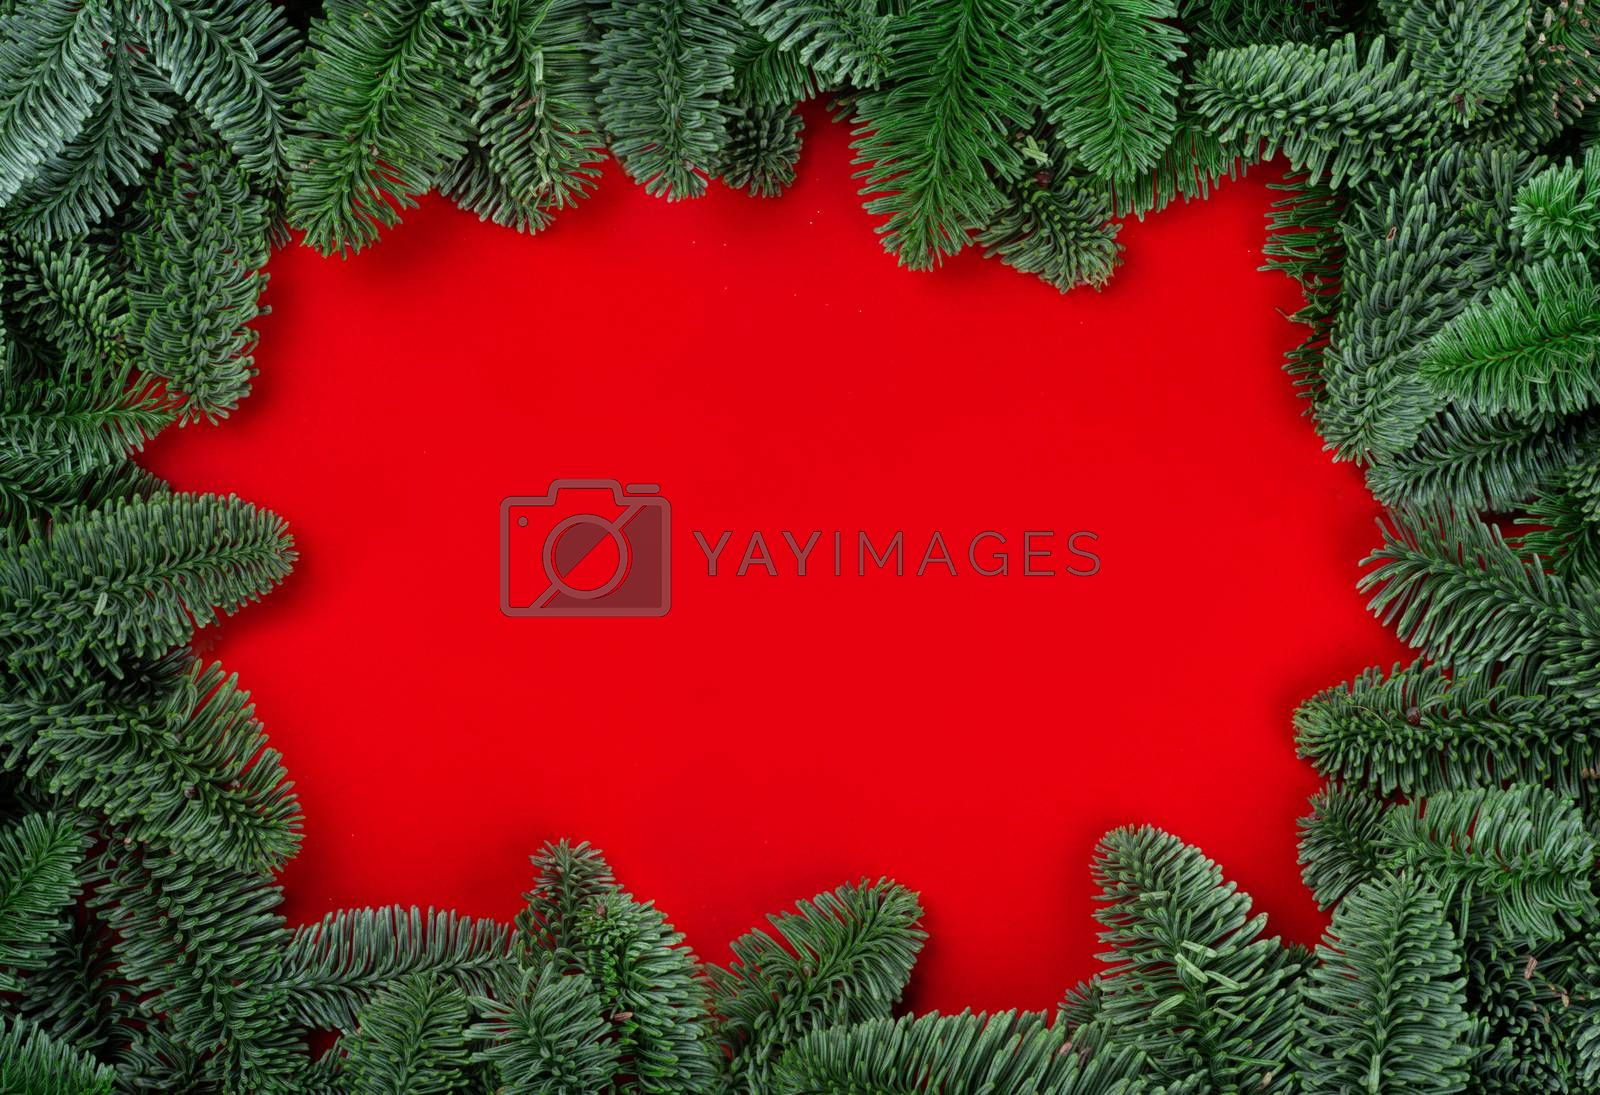 Royalty free image of Christmas fir tree on red by destillat